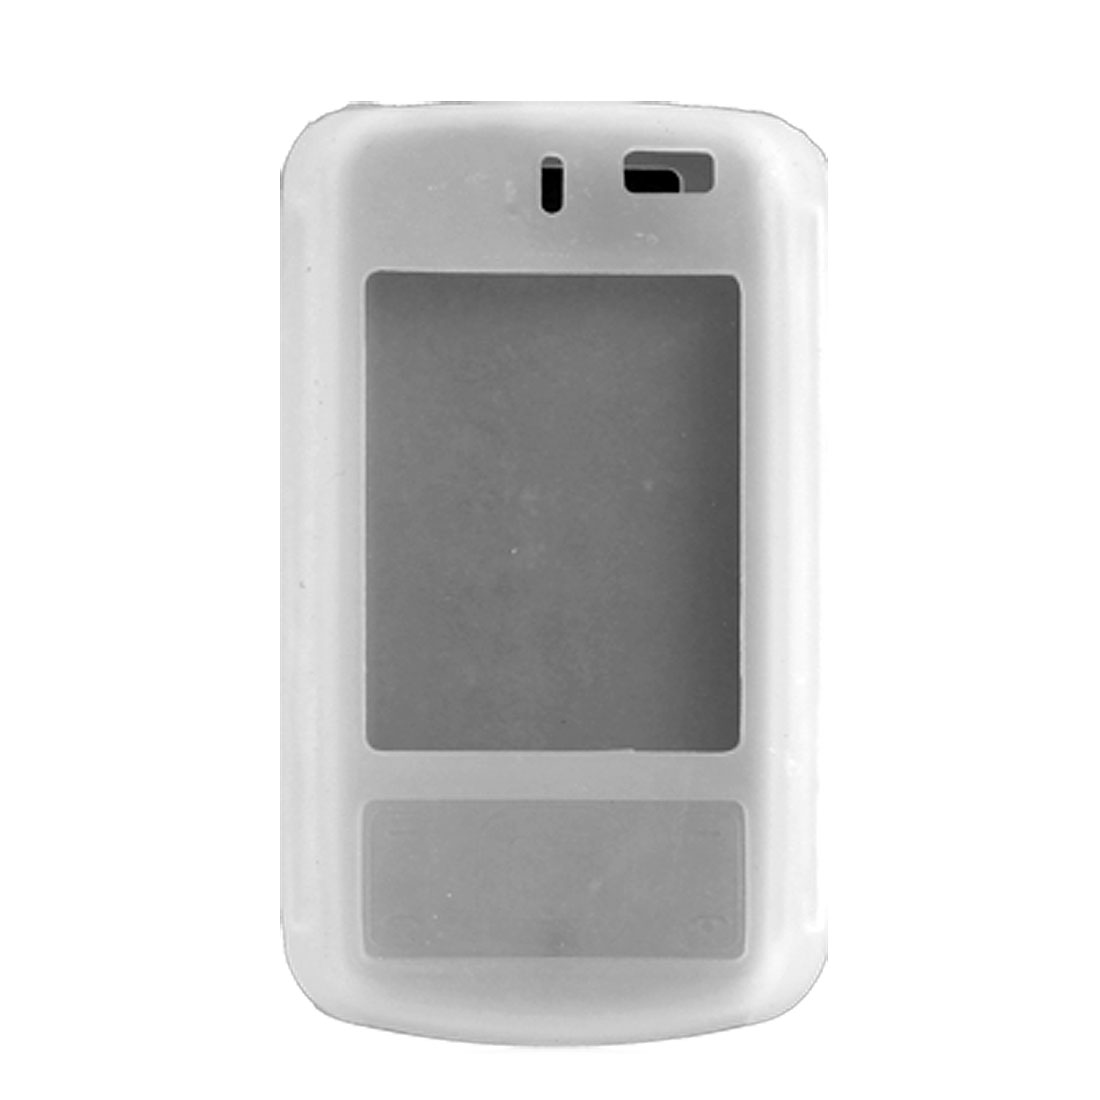 Clear White Silicone Case for Nokia 6600 Slide